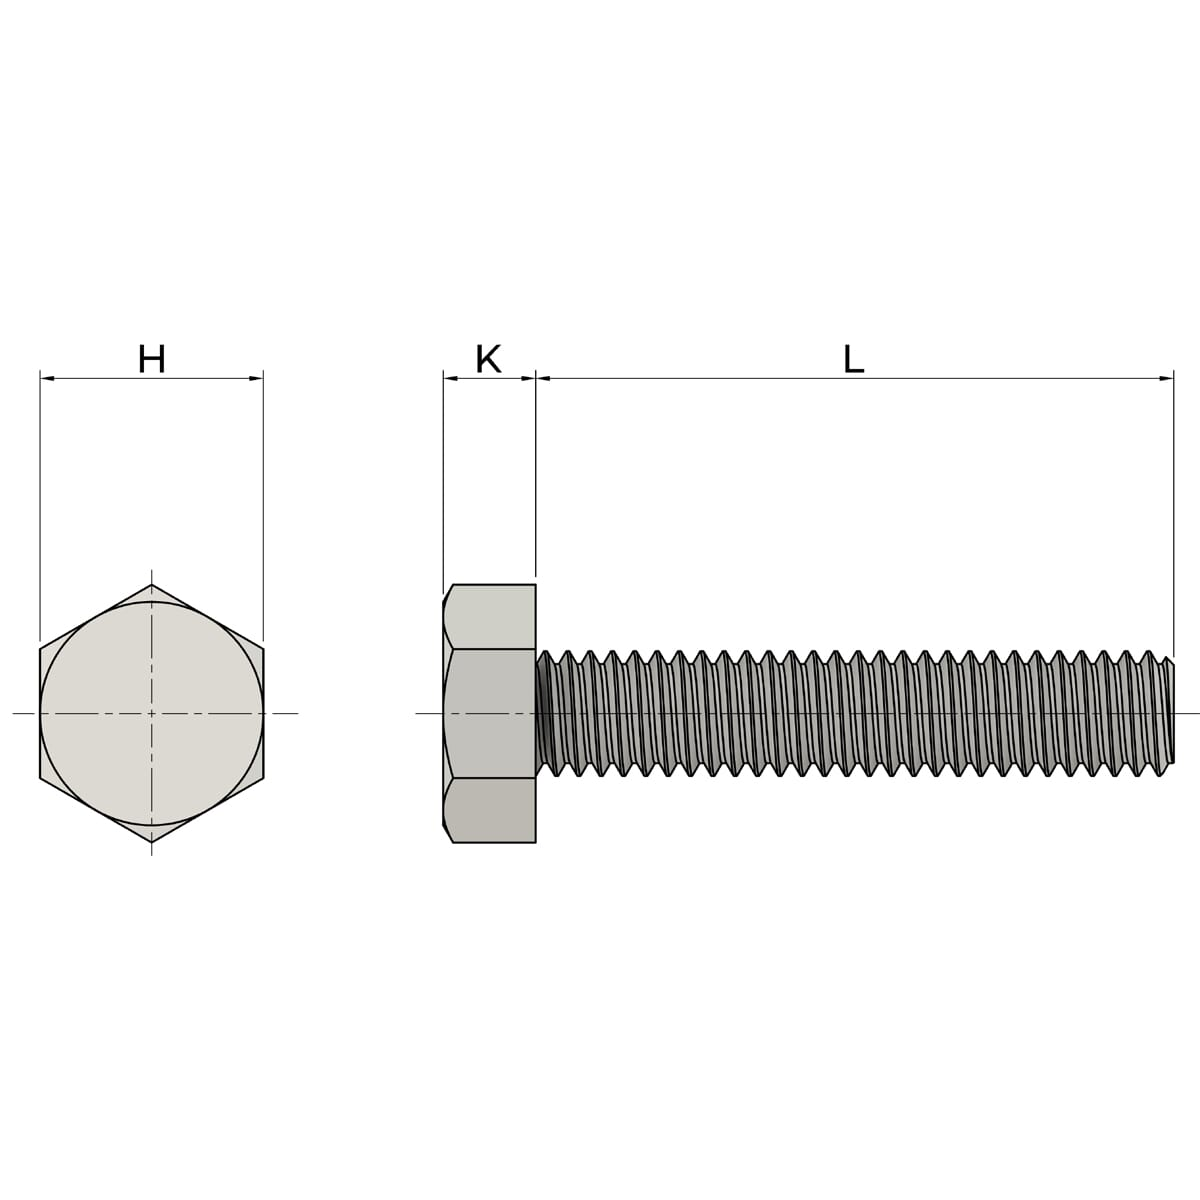 M18 x 50mm Full Thread Hexagon Bolts (DIN 933) - Marine Stainless Steel (A4) Drawing